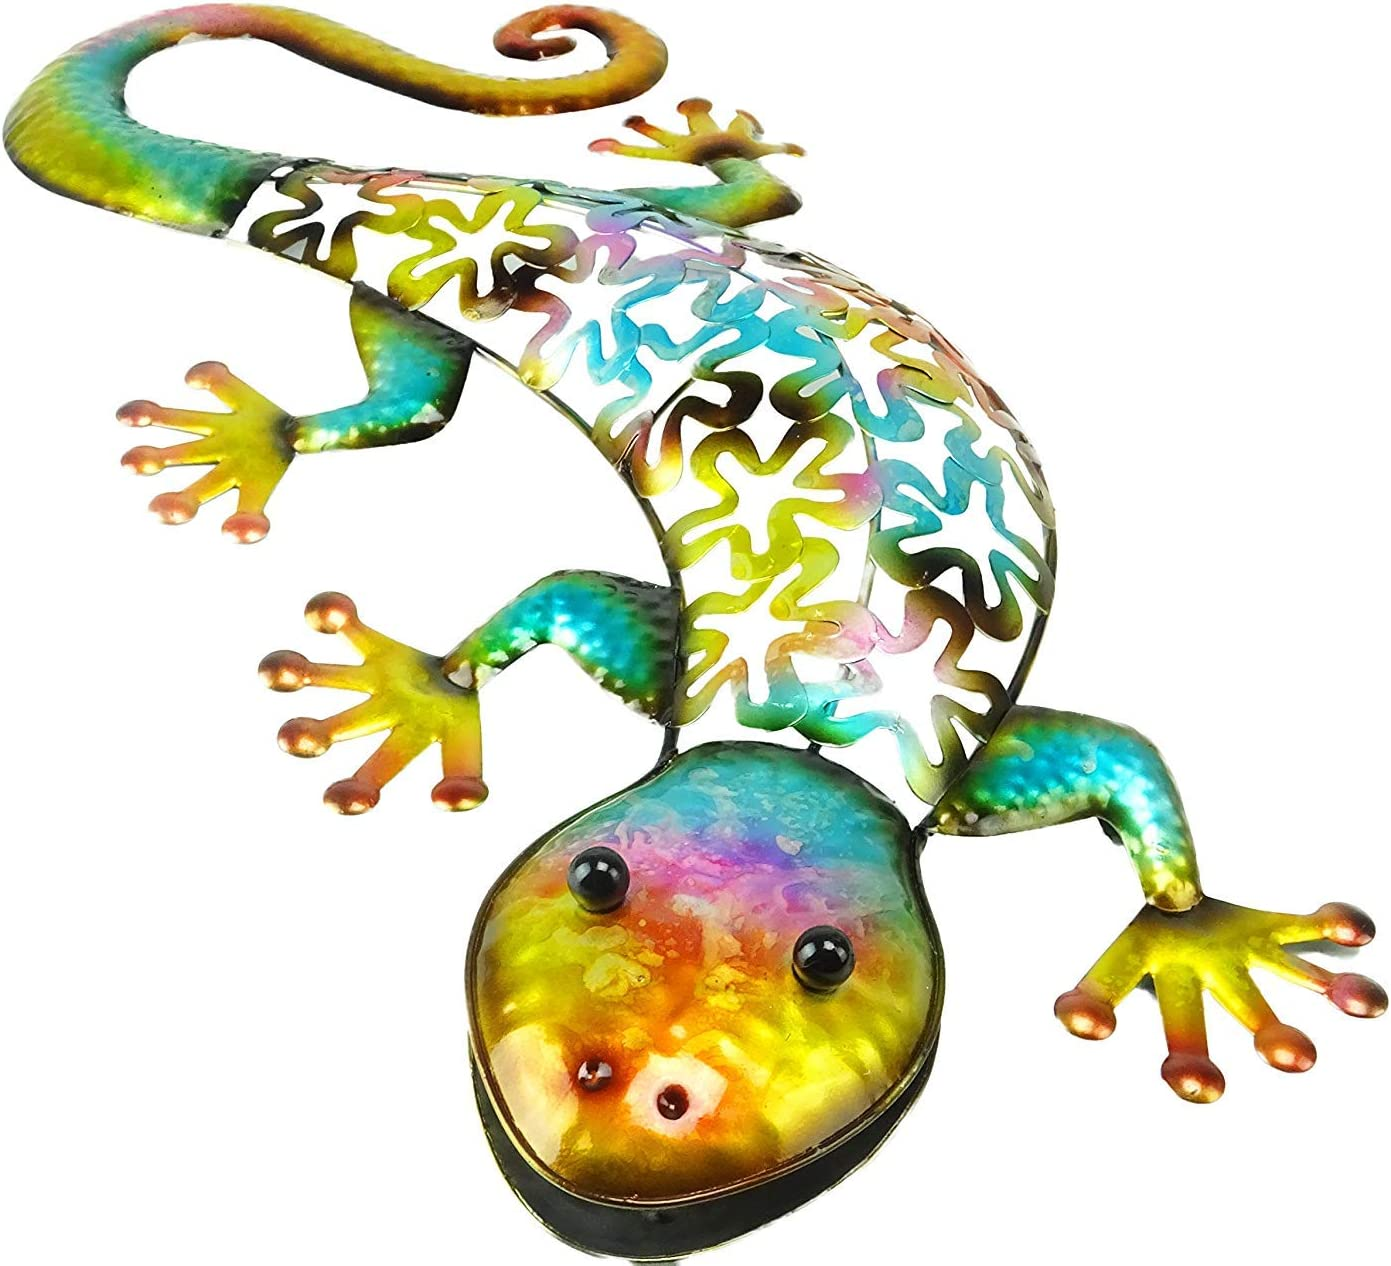 Gecko Decorative Blue Metal Wall Hanging Home /& Garden Decor